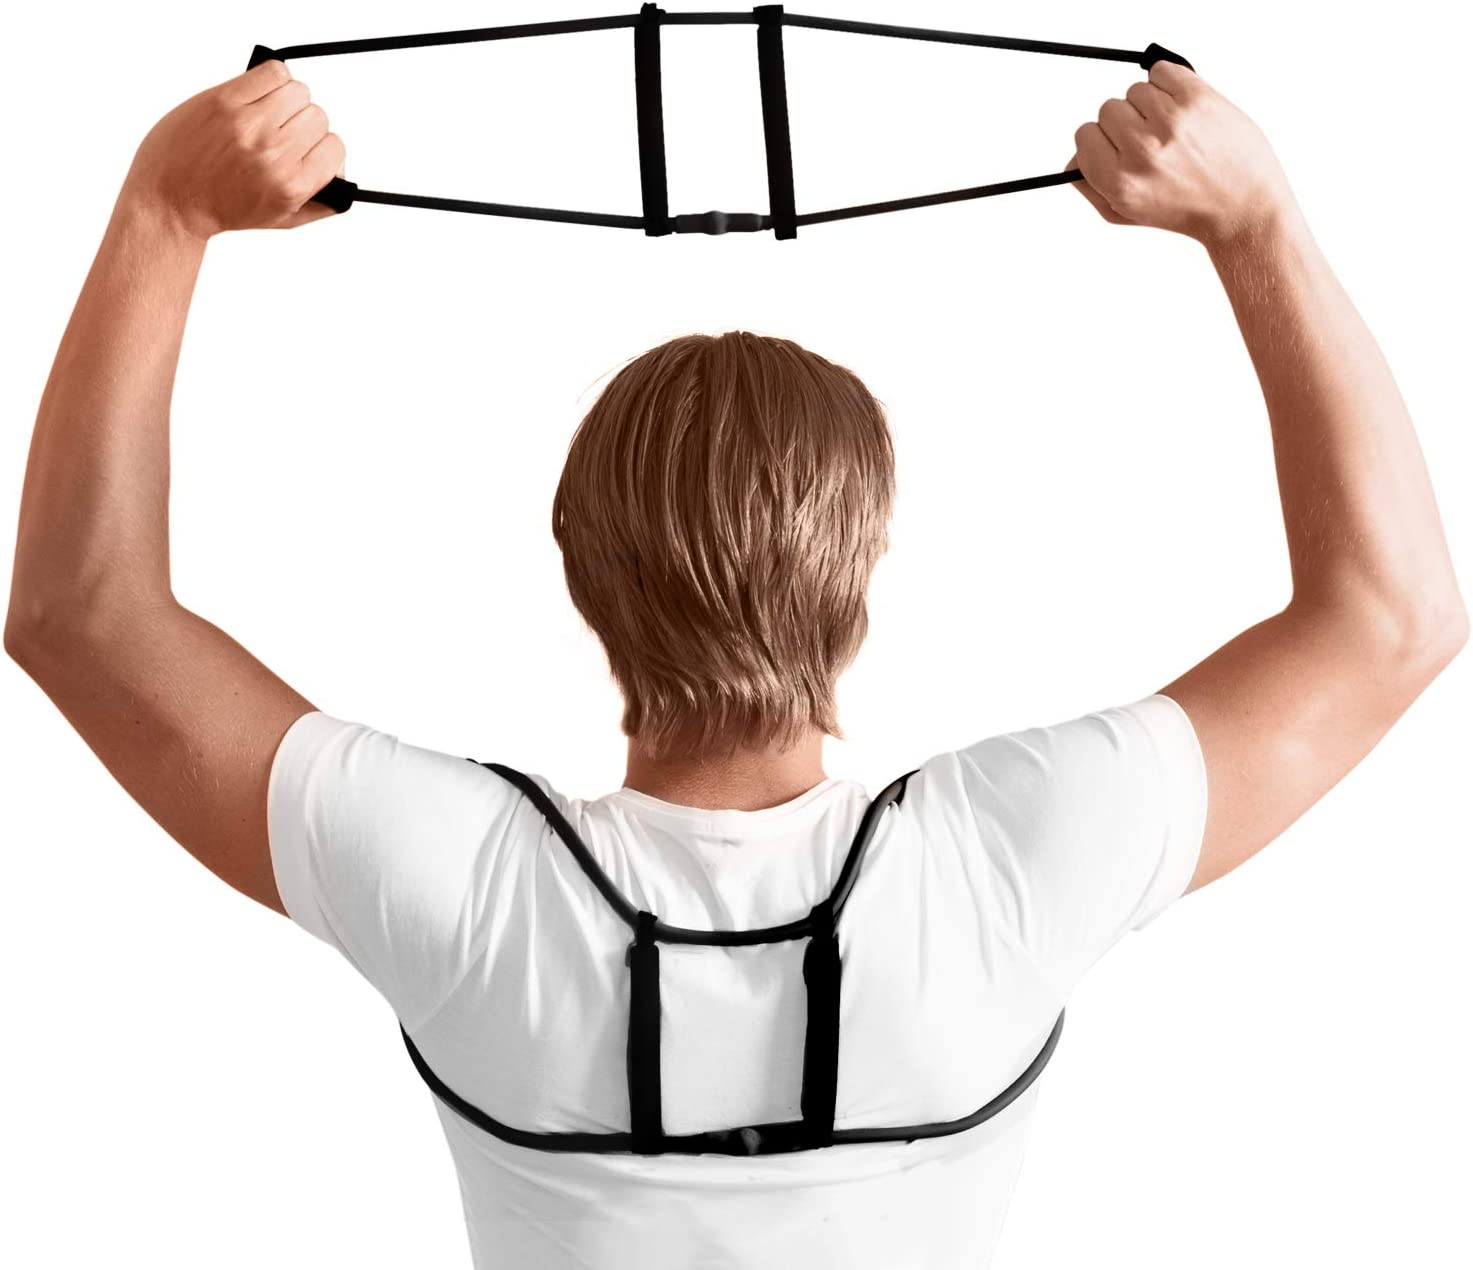 Swedish Posture Trainer A Perfect Reminder For Everyday Training Improved Posture and Shoulder Alignment.